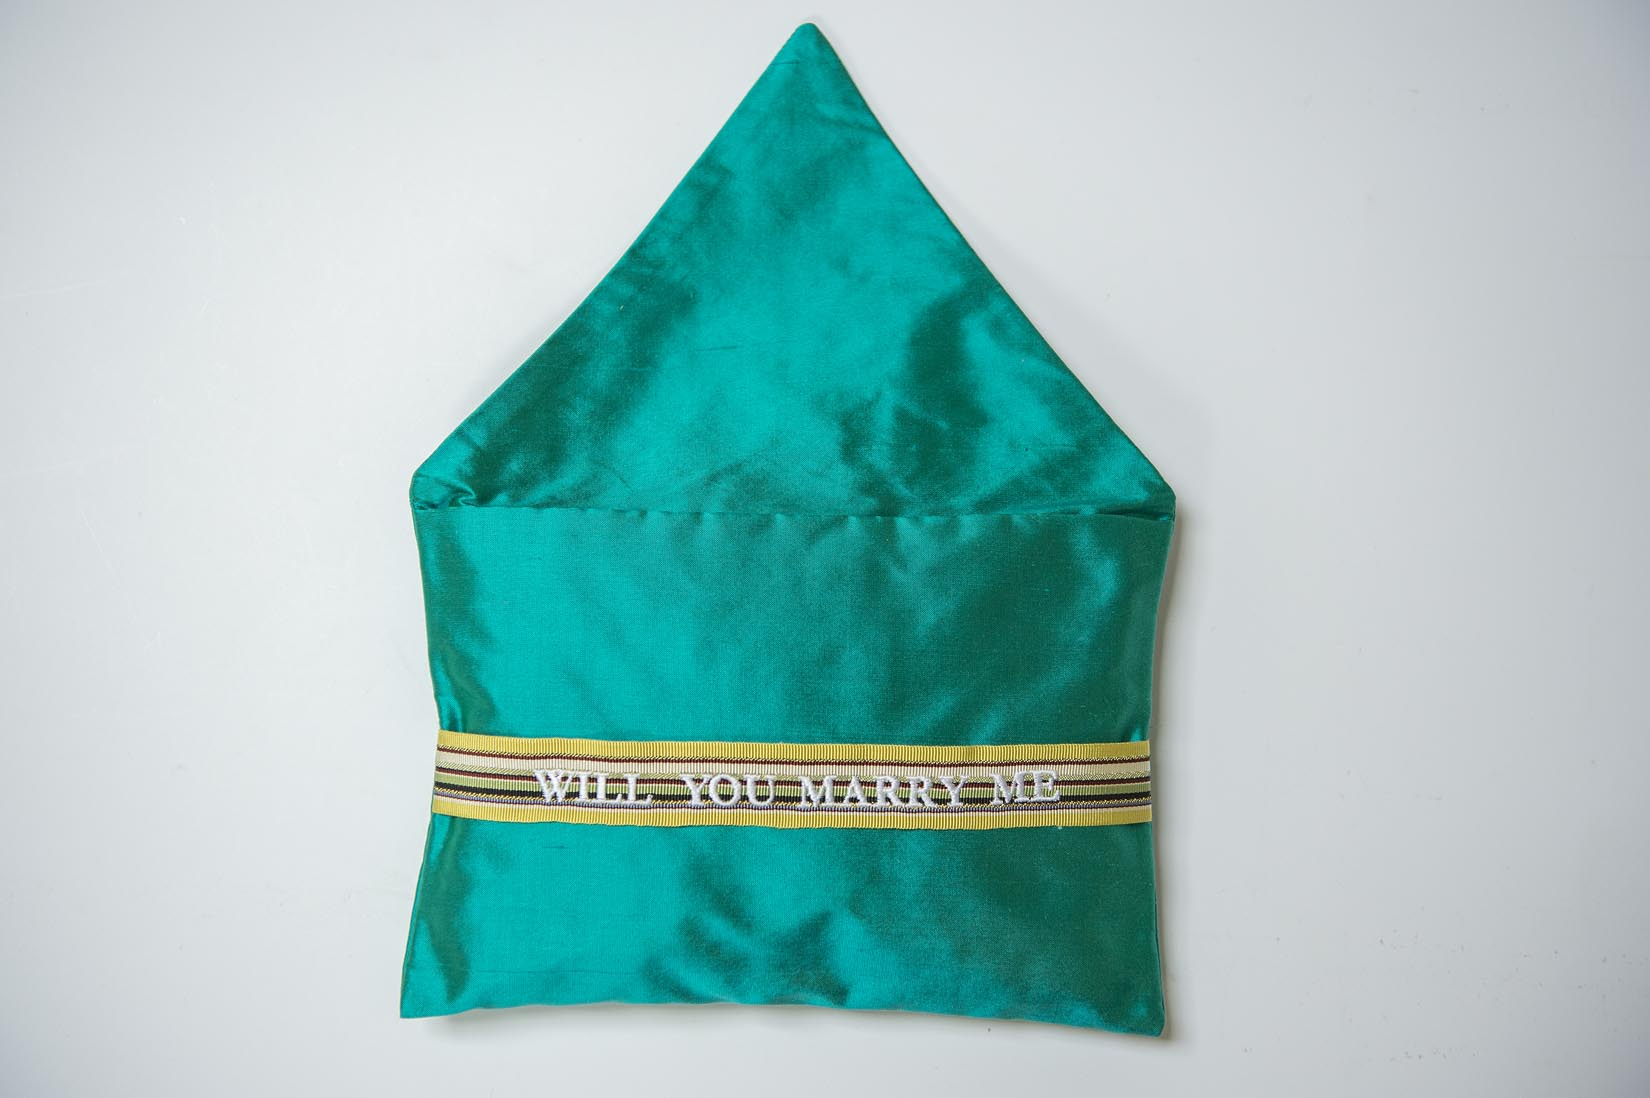 Will you marry me - teal silk envelope cushion - MyBilletDoux.com